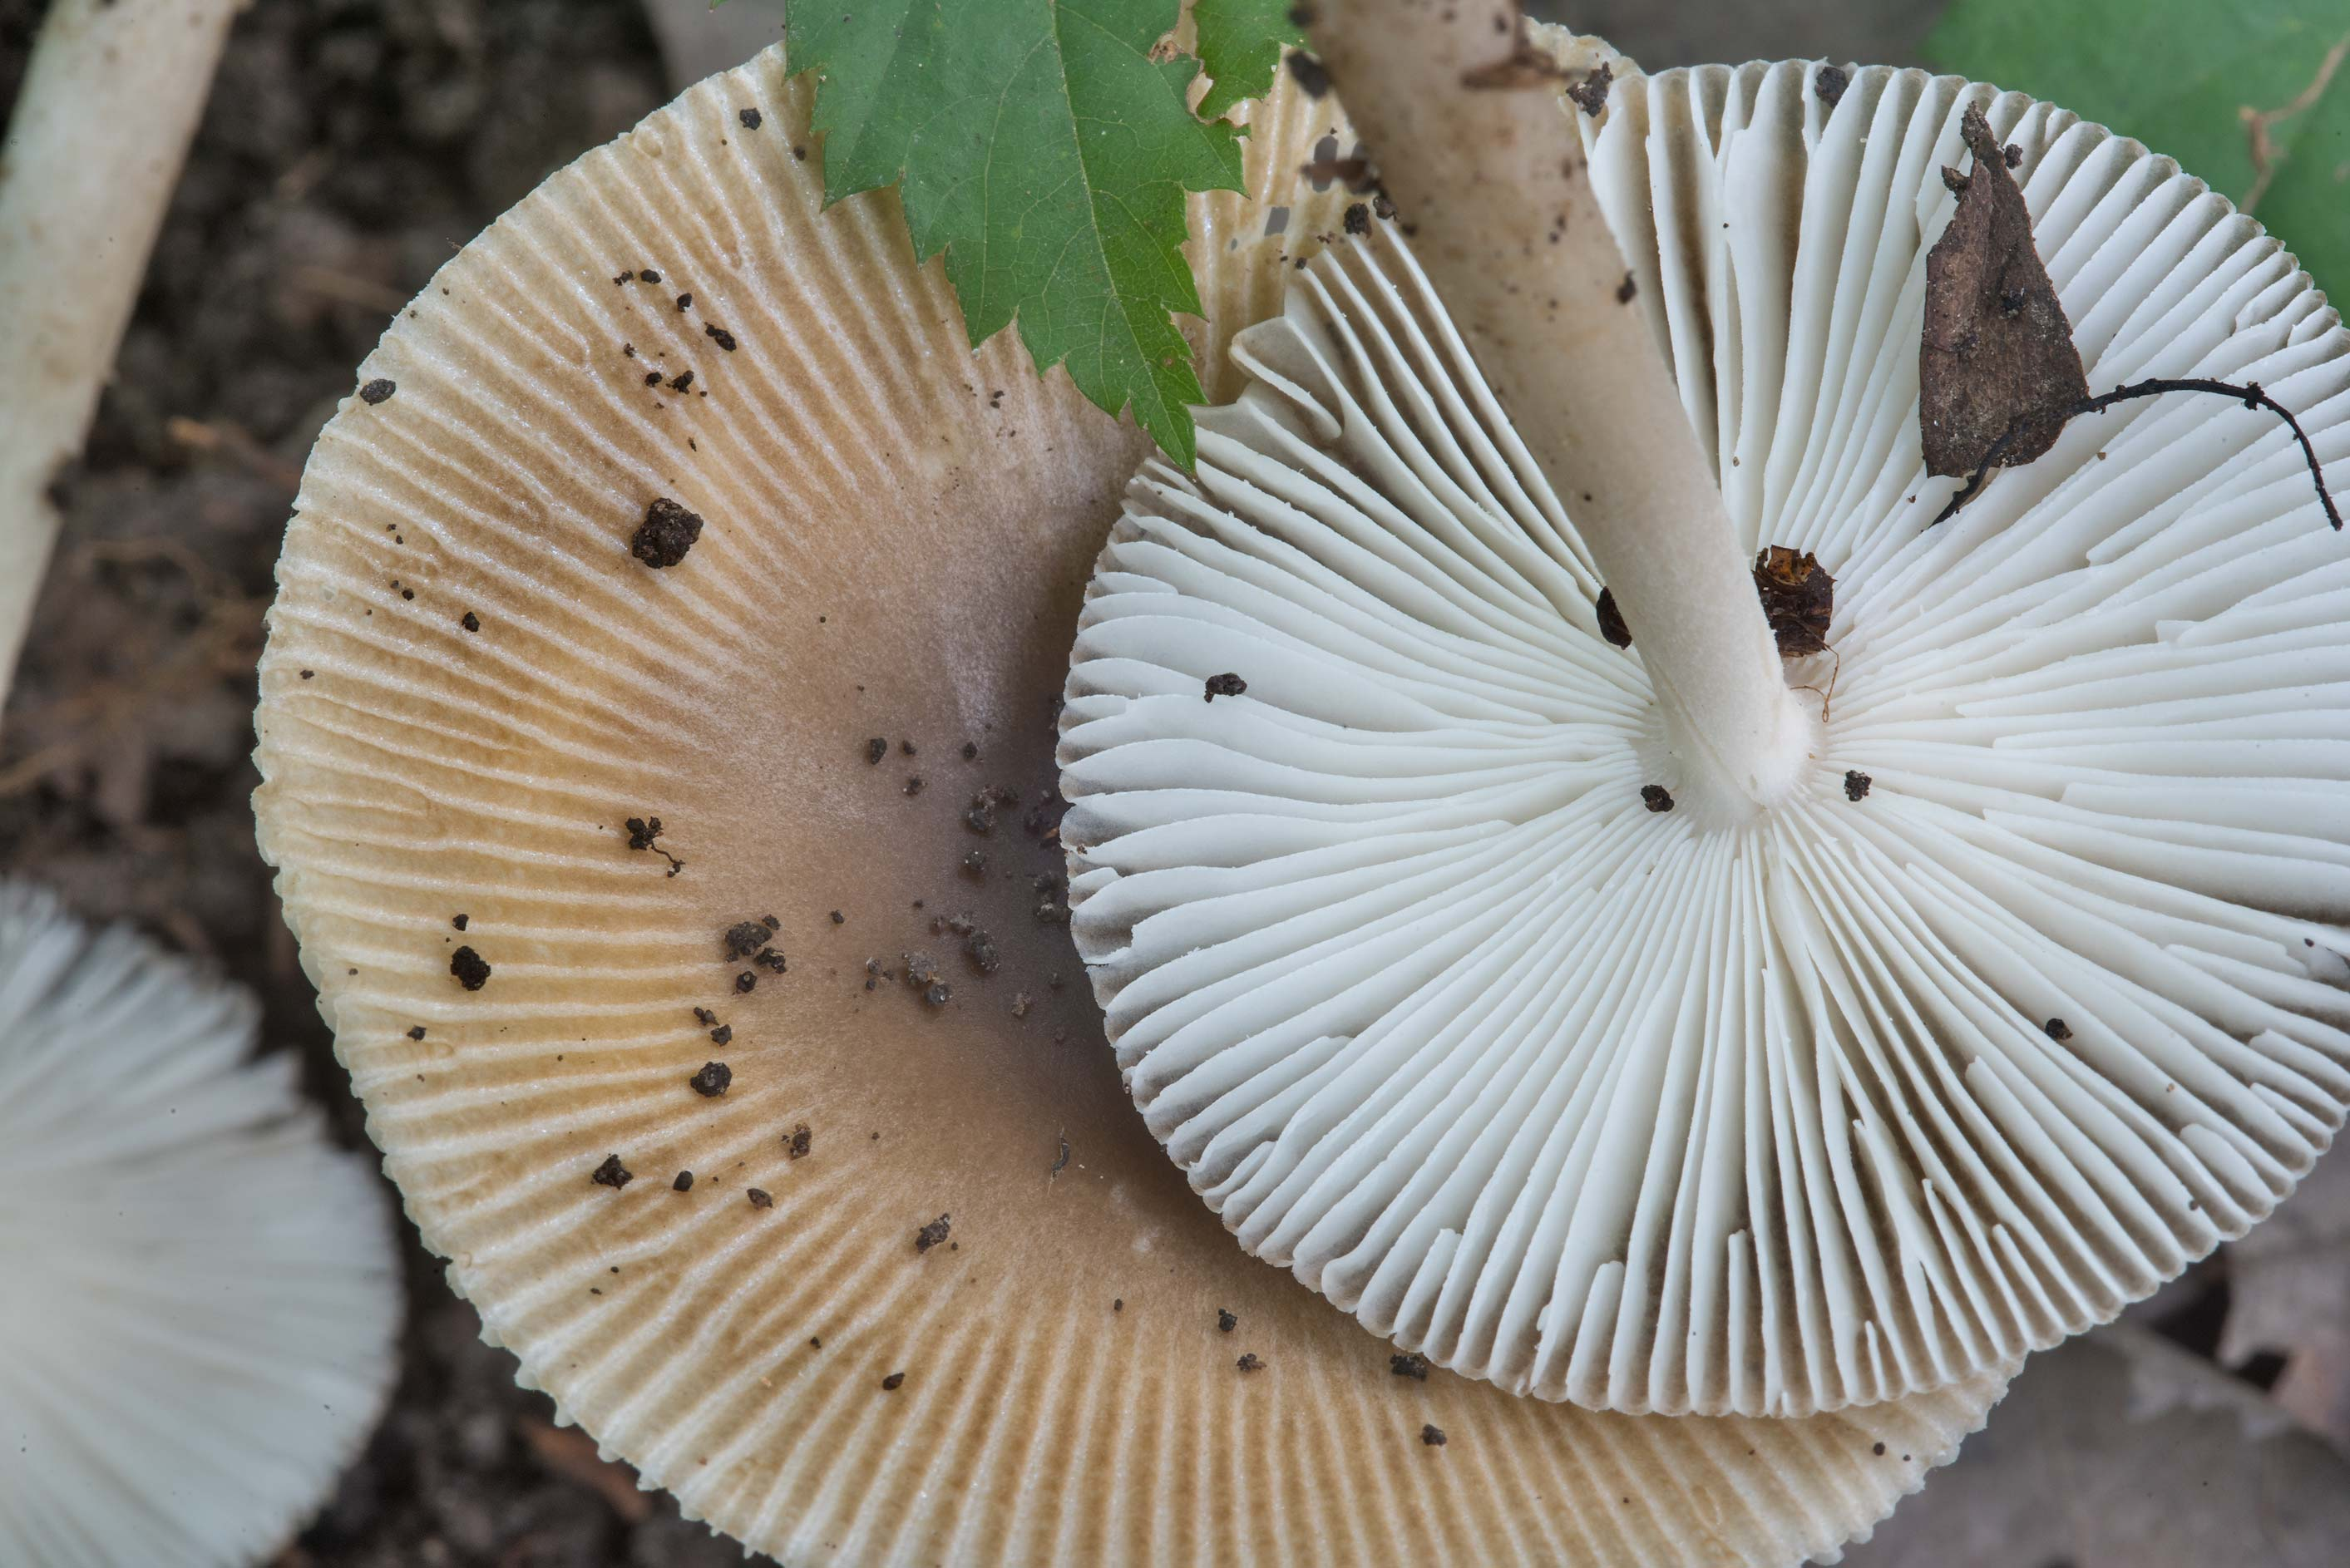 Gills of a grisette mushroom Amanita sect...Creek Park. College Station, Texas